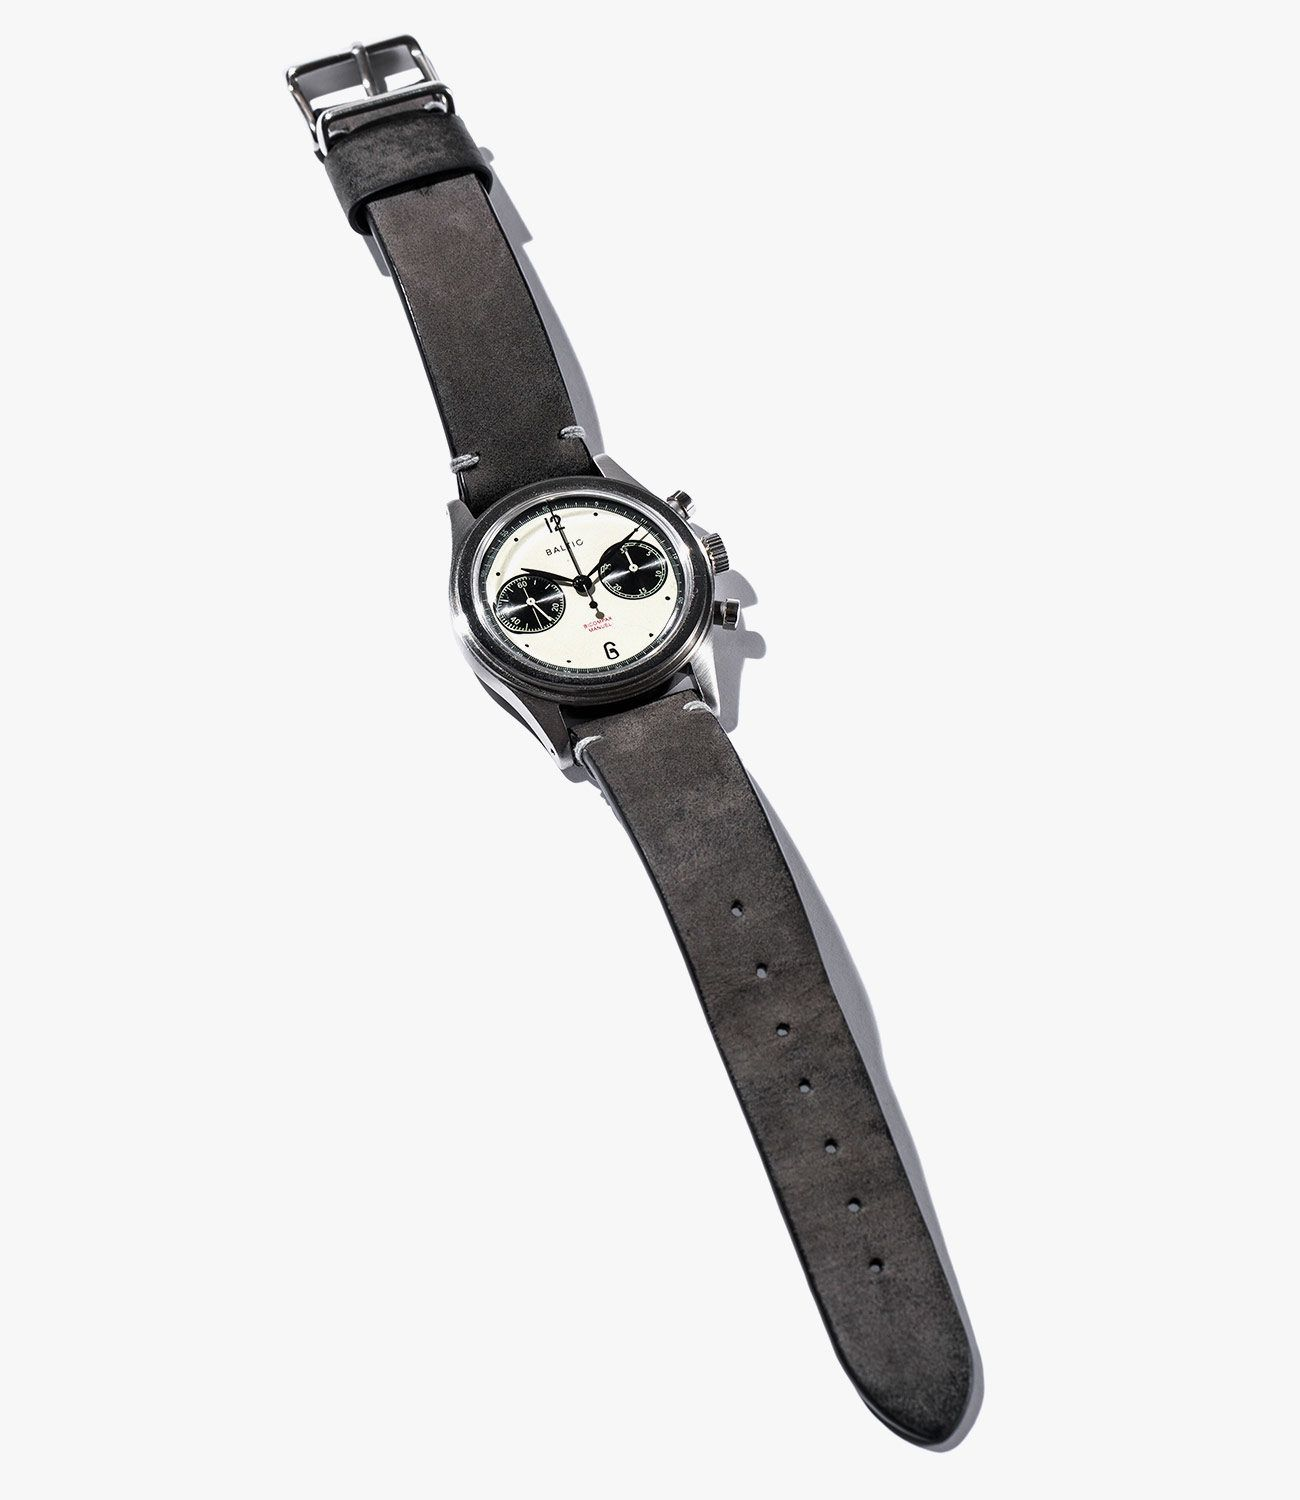 Leather-Watch-Bands-gear-patrol-Worn-and-Wound-Model-2-slide-1